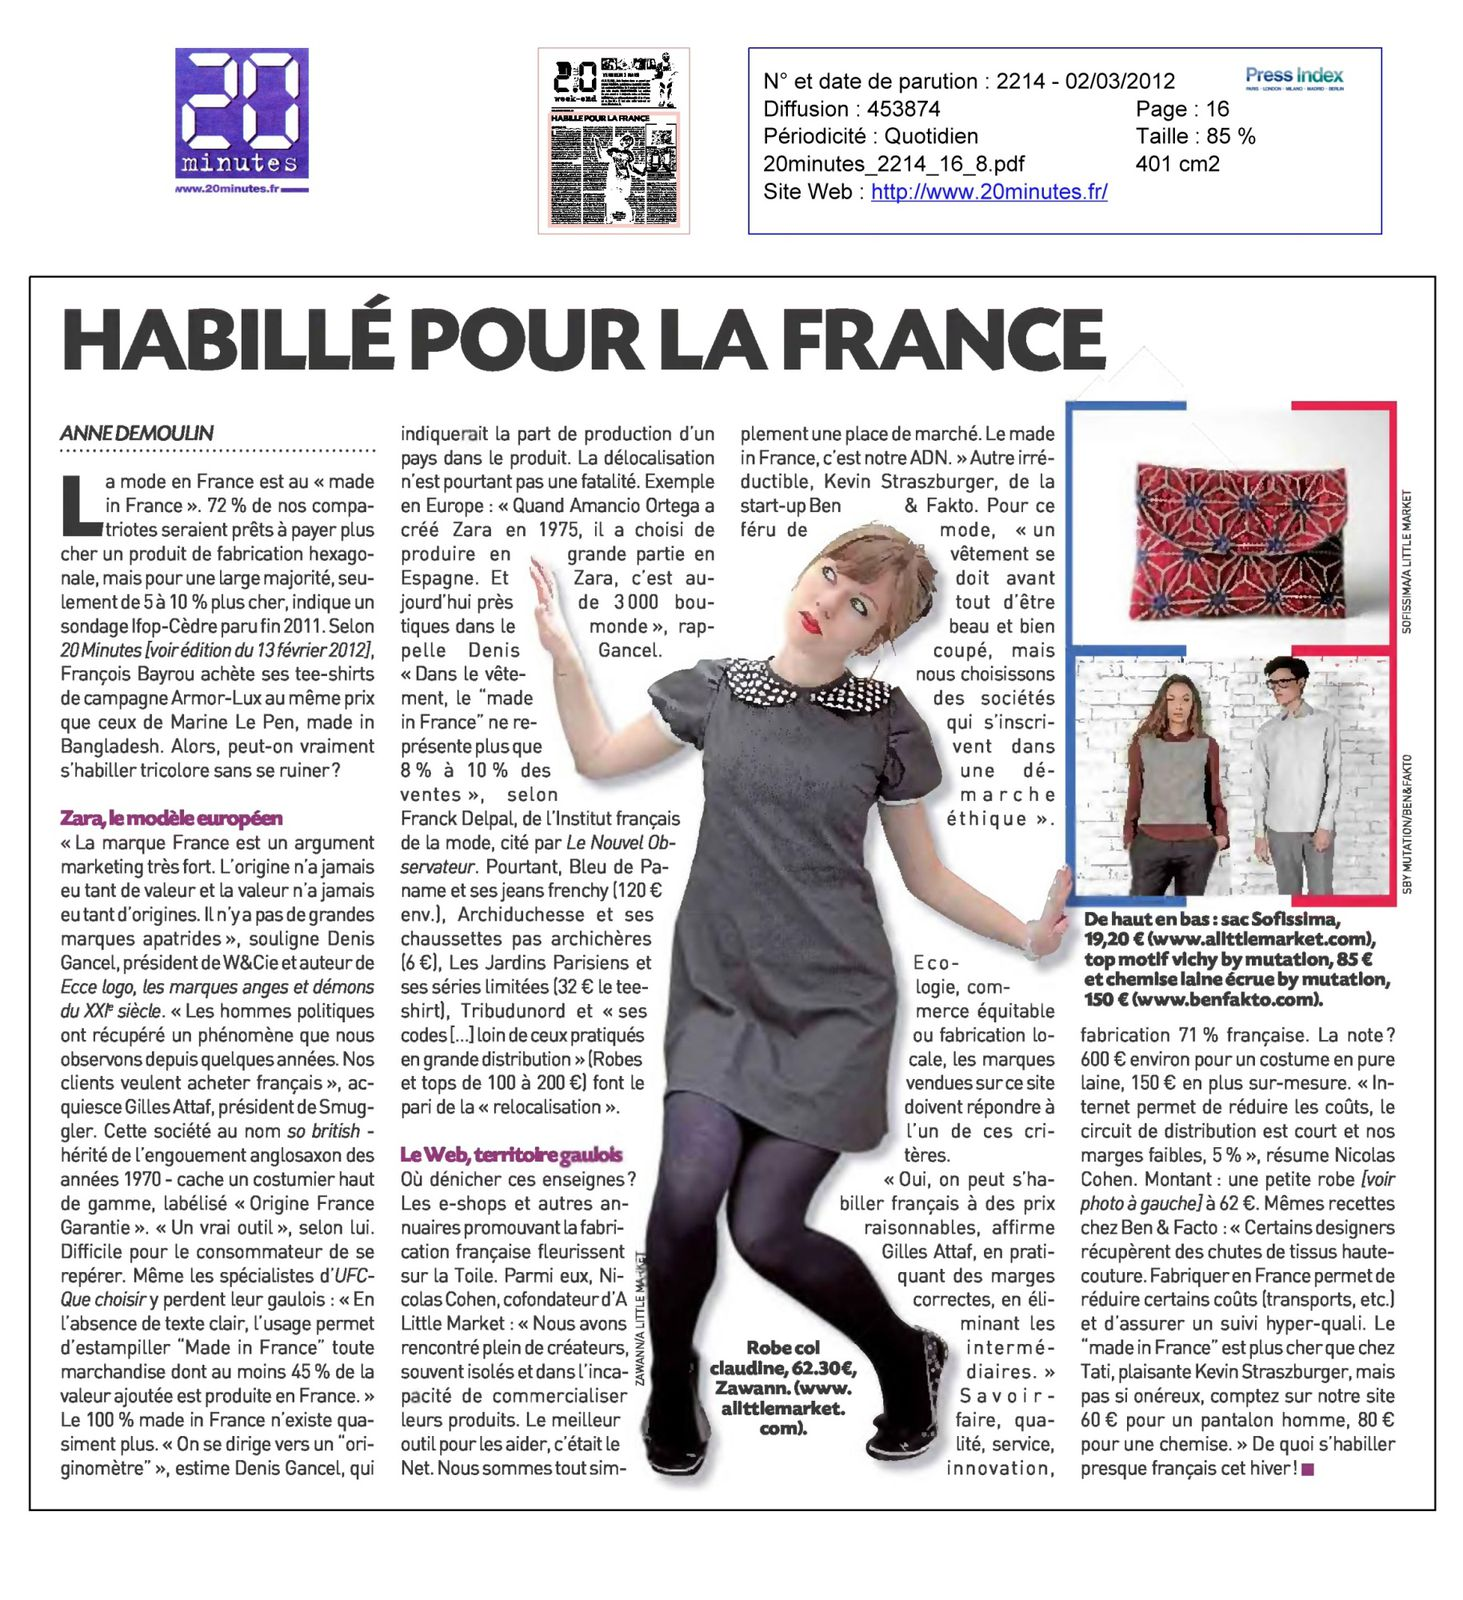 Zawann cr ateur de mode lille parution presse dans le journal 20 minute - Le journal de la mode ...